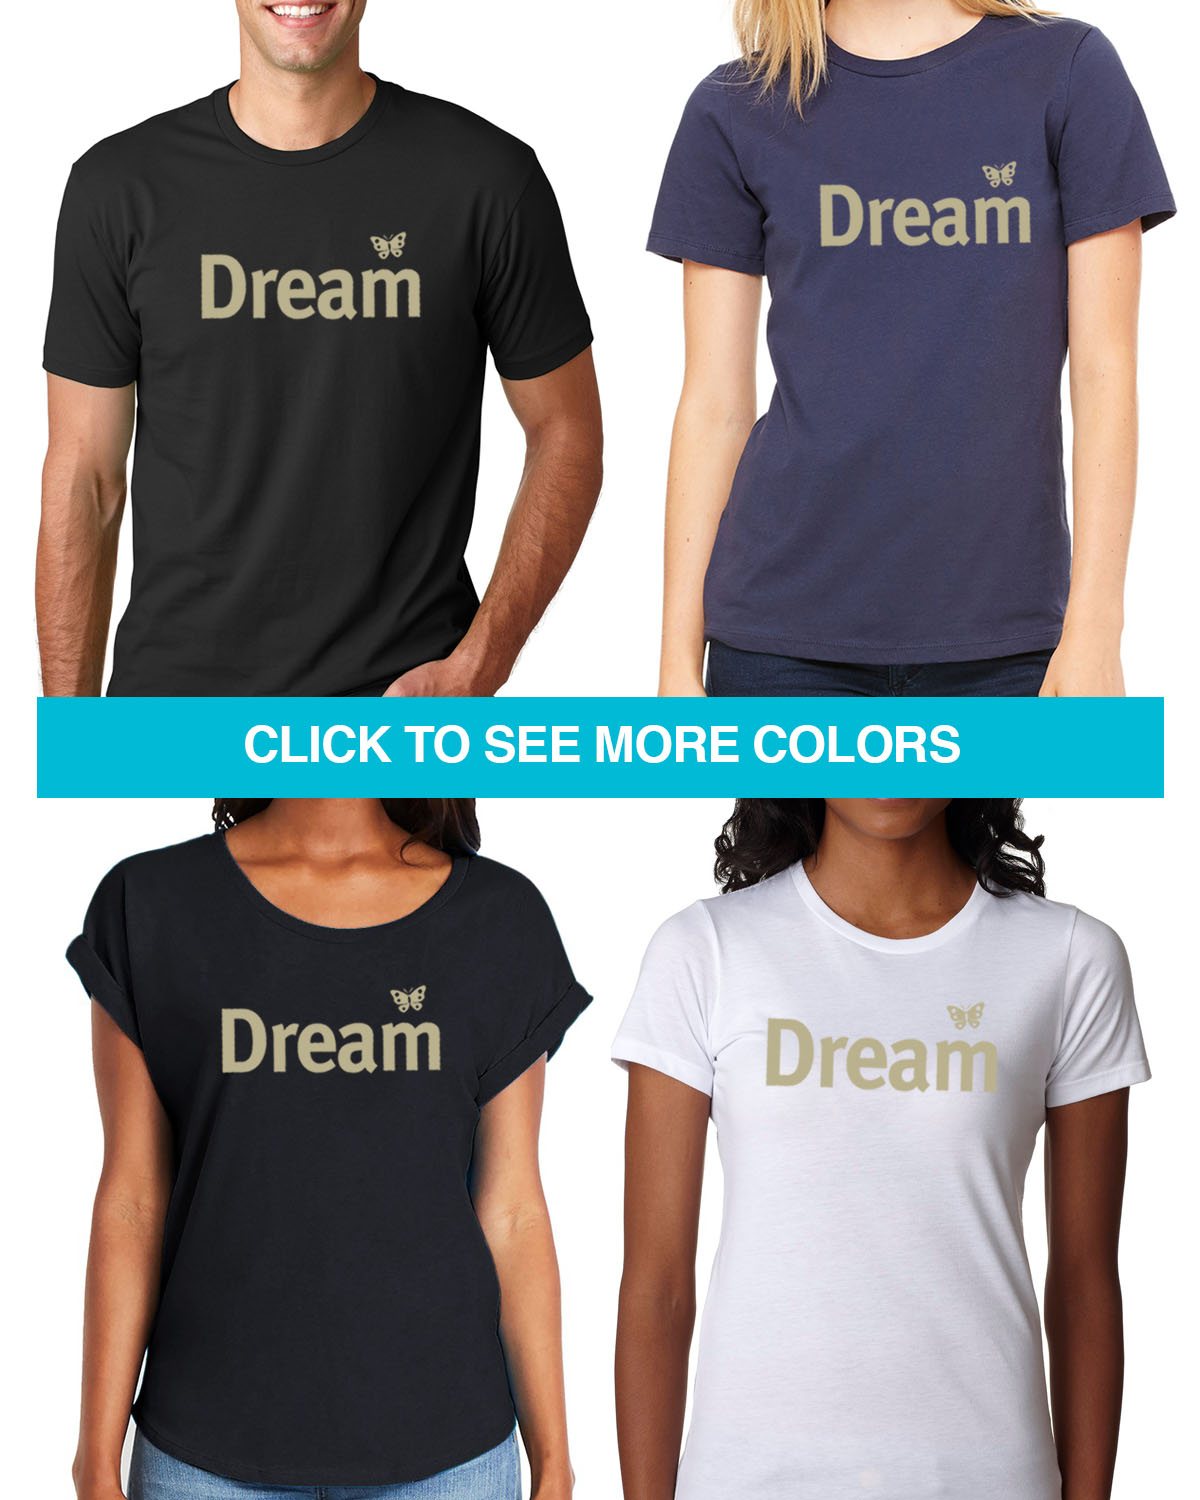 Dream Tees for Men & Women